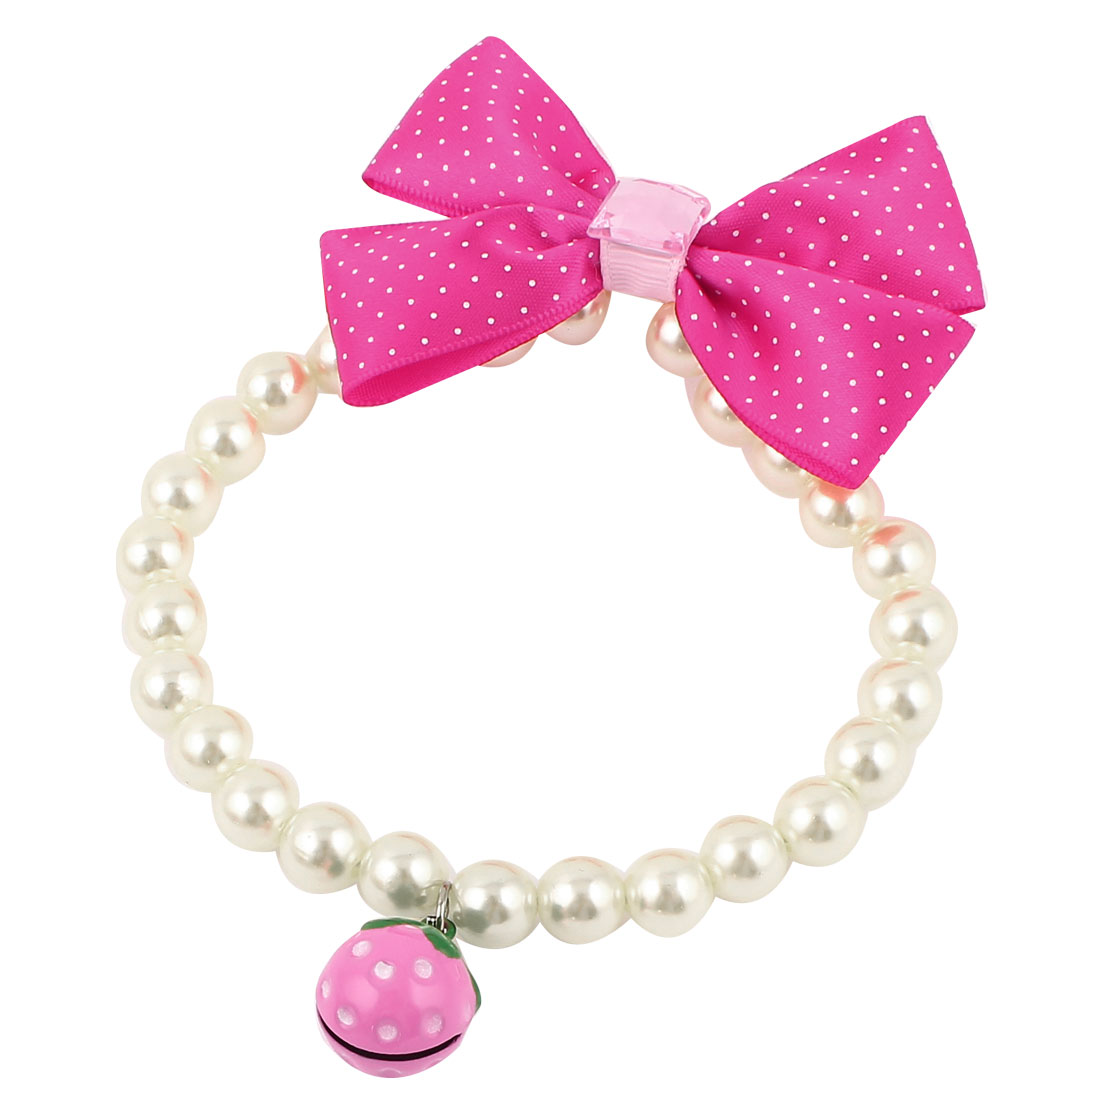 Metal Bell Pendant Bowknot Accent Pet Dog Plastic Beads Collar Necklace White Fuchsia S